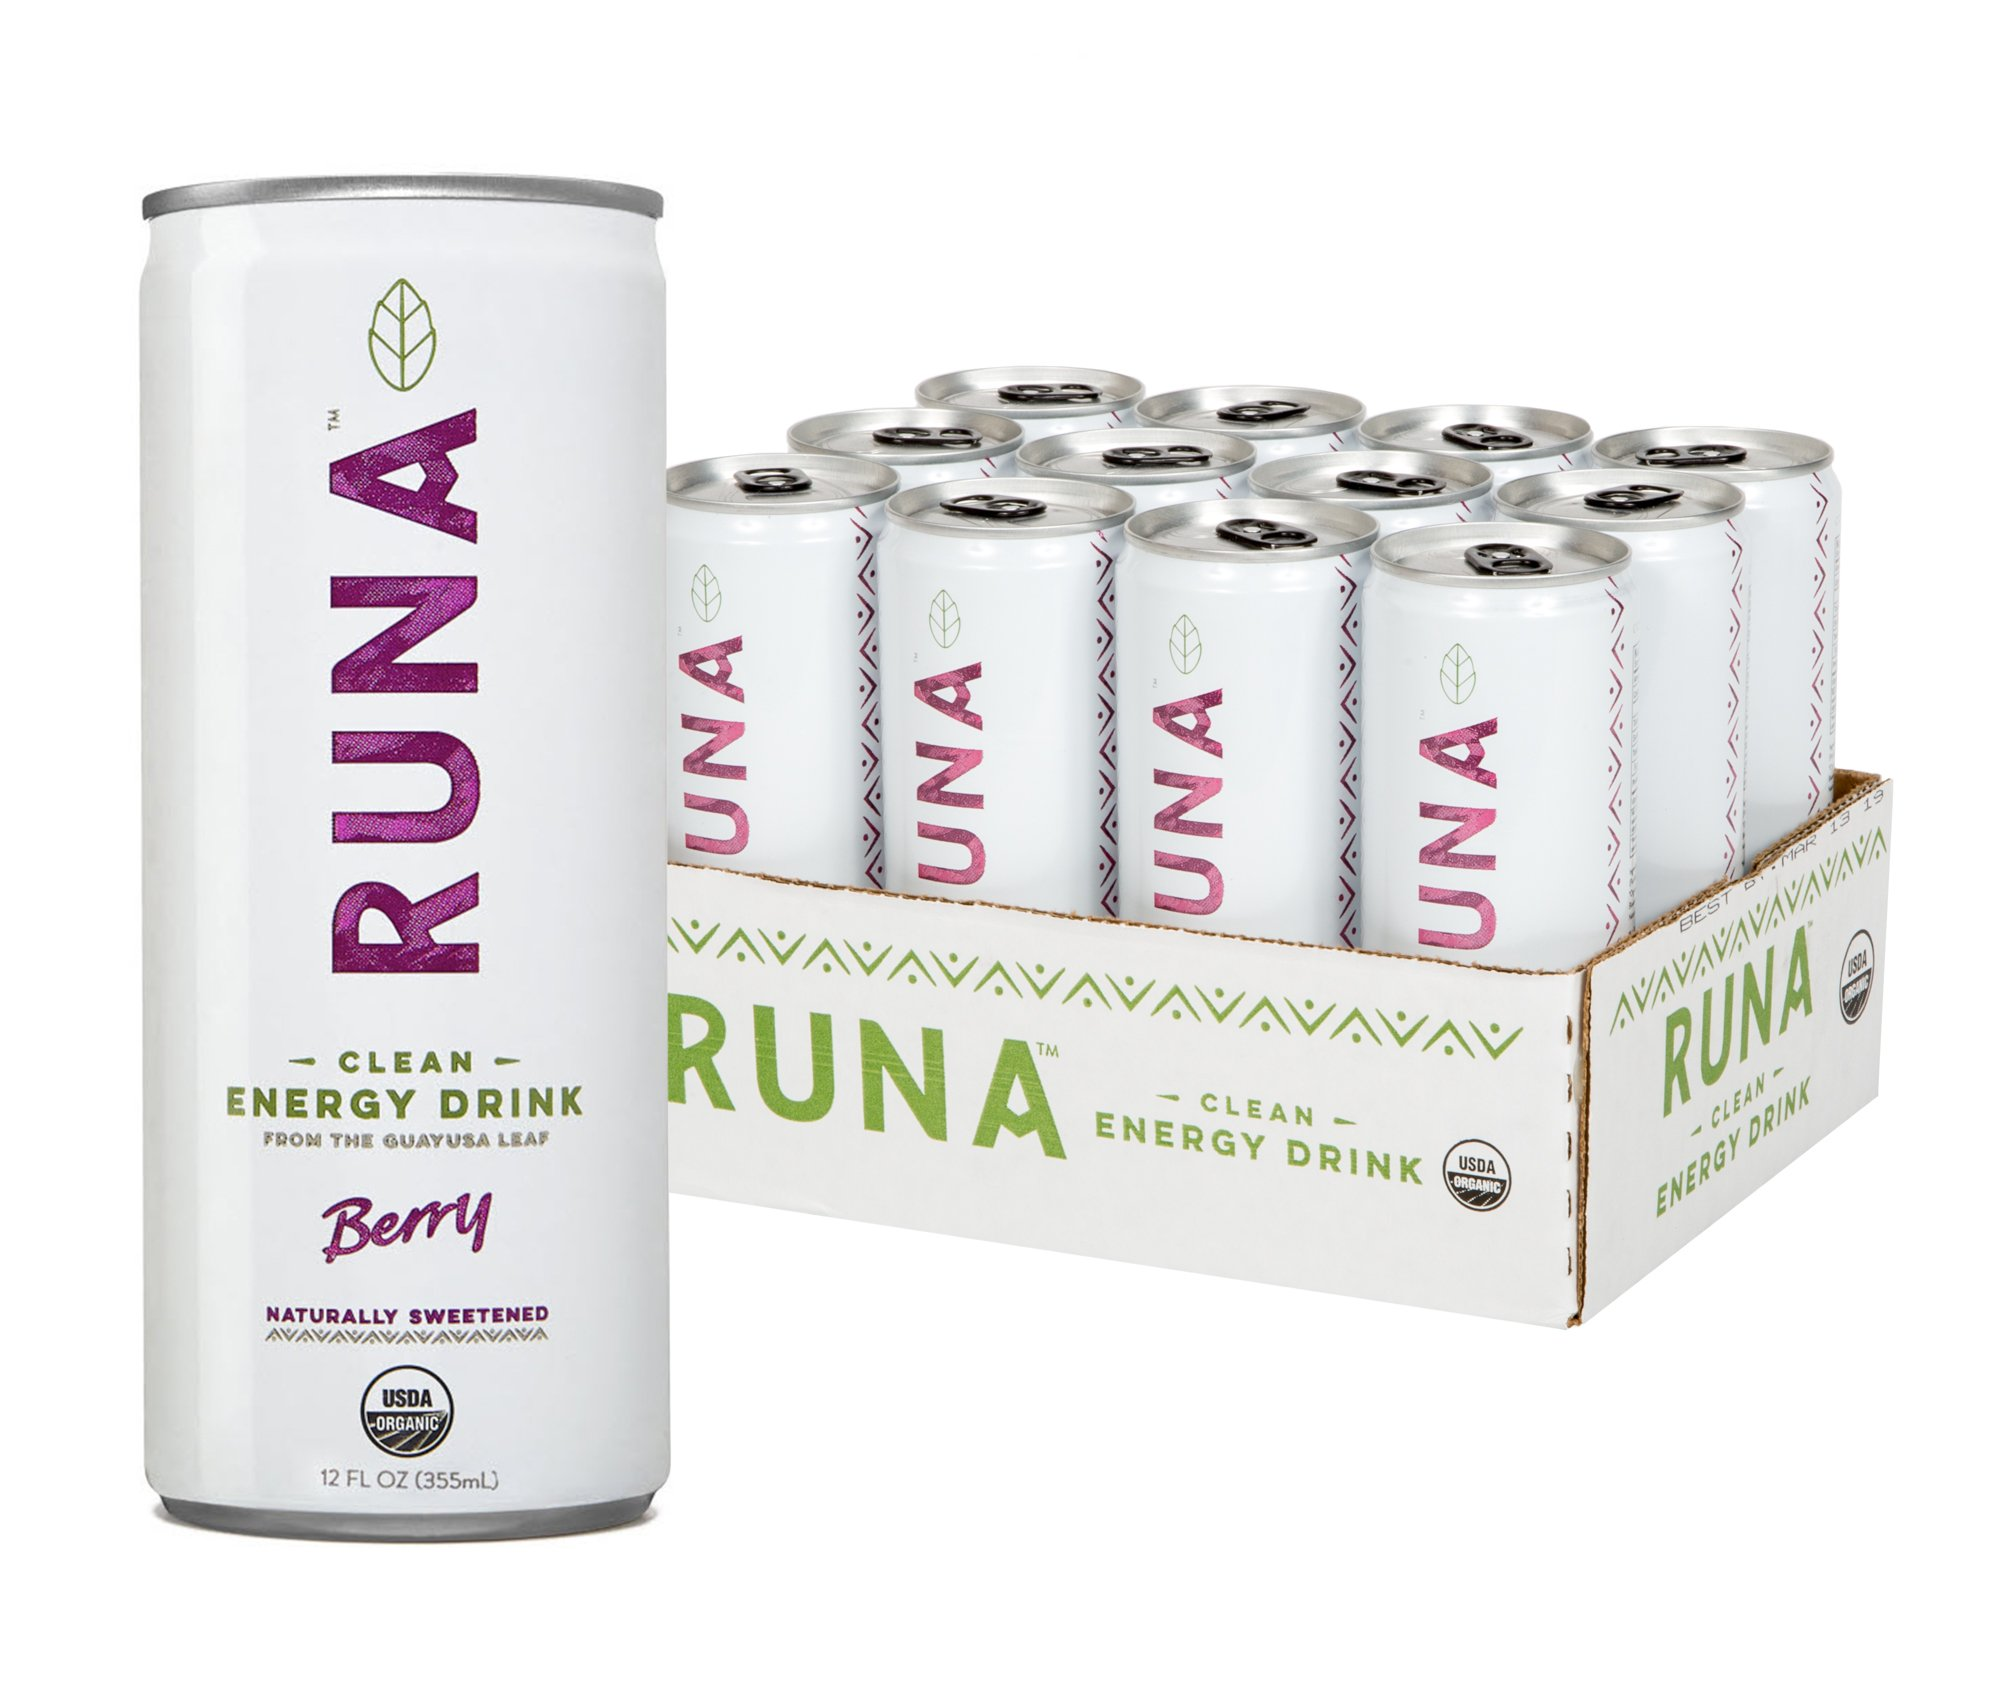 RUNA Organic Clean Energy Drink from the Guayusa Leaf, Berry, 12 Fluid Ounce (Pack of 12)